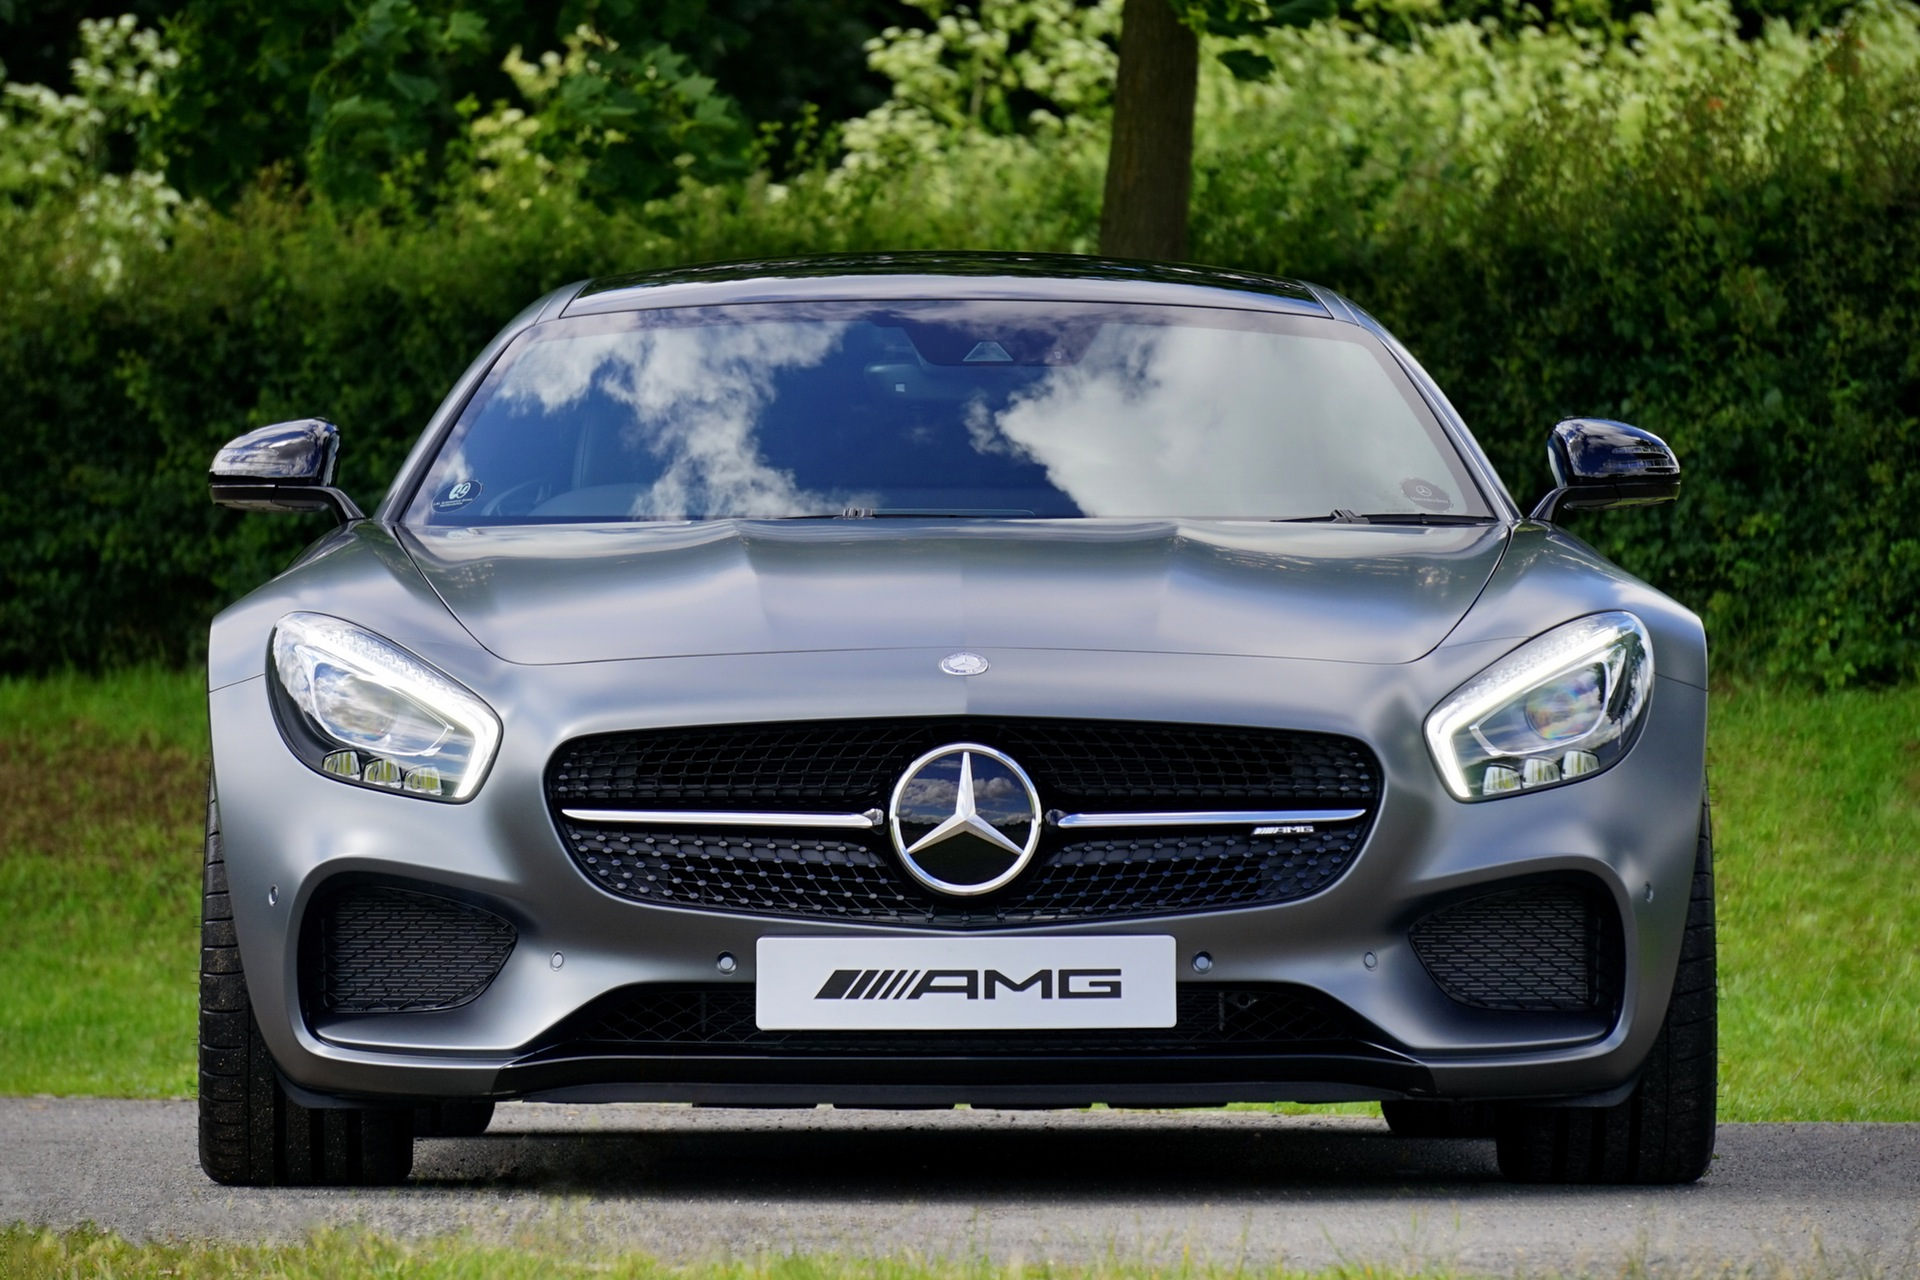 voiture, luxe, sport, Mercedes, Elite, Benz - Fonds d'écran HD - Professor-falken.com